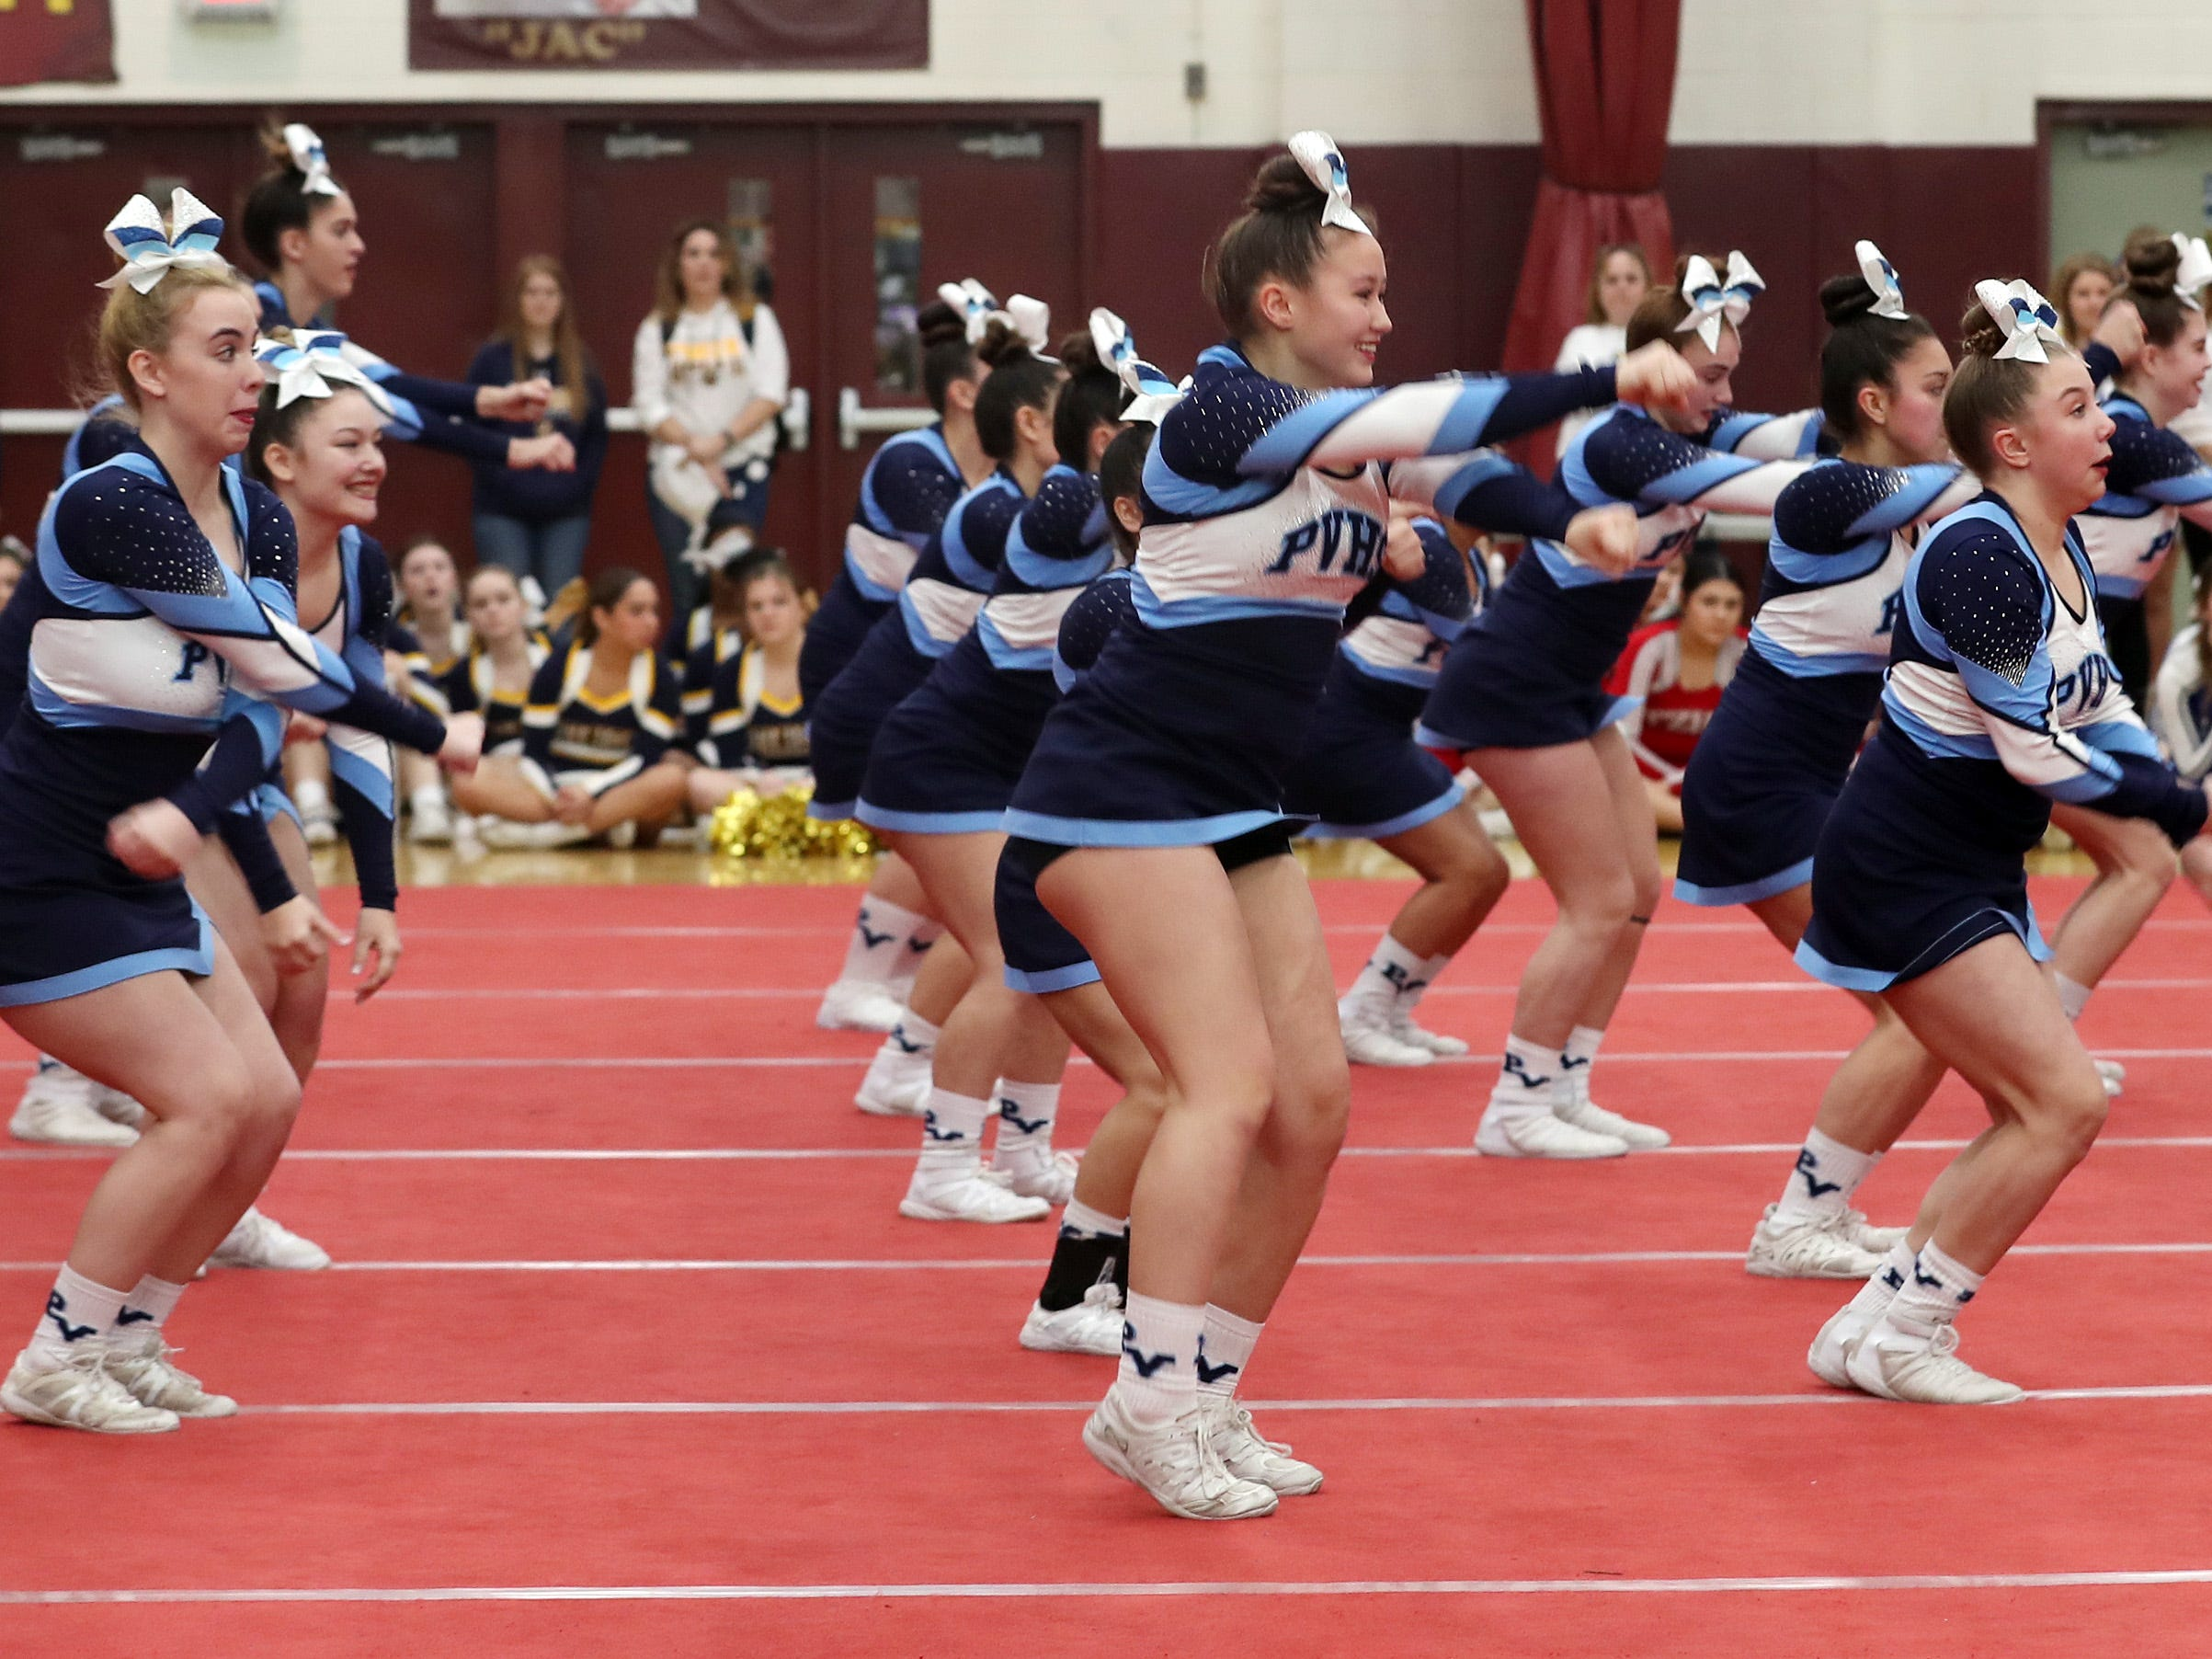 Putnam Valley High School competes during the Section 1 cheerleading championships at Arlington High School in Freedom Plains Feb. 16, 2019.